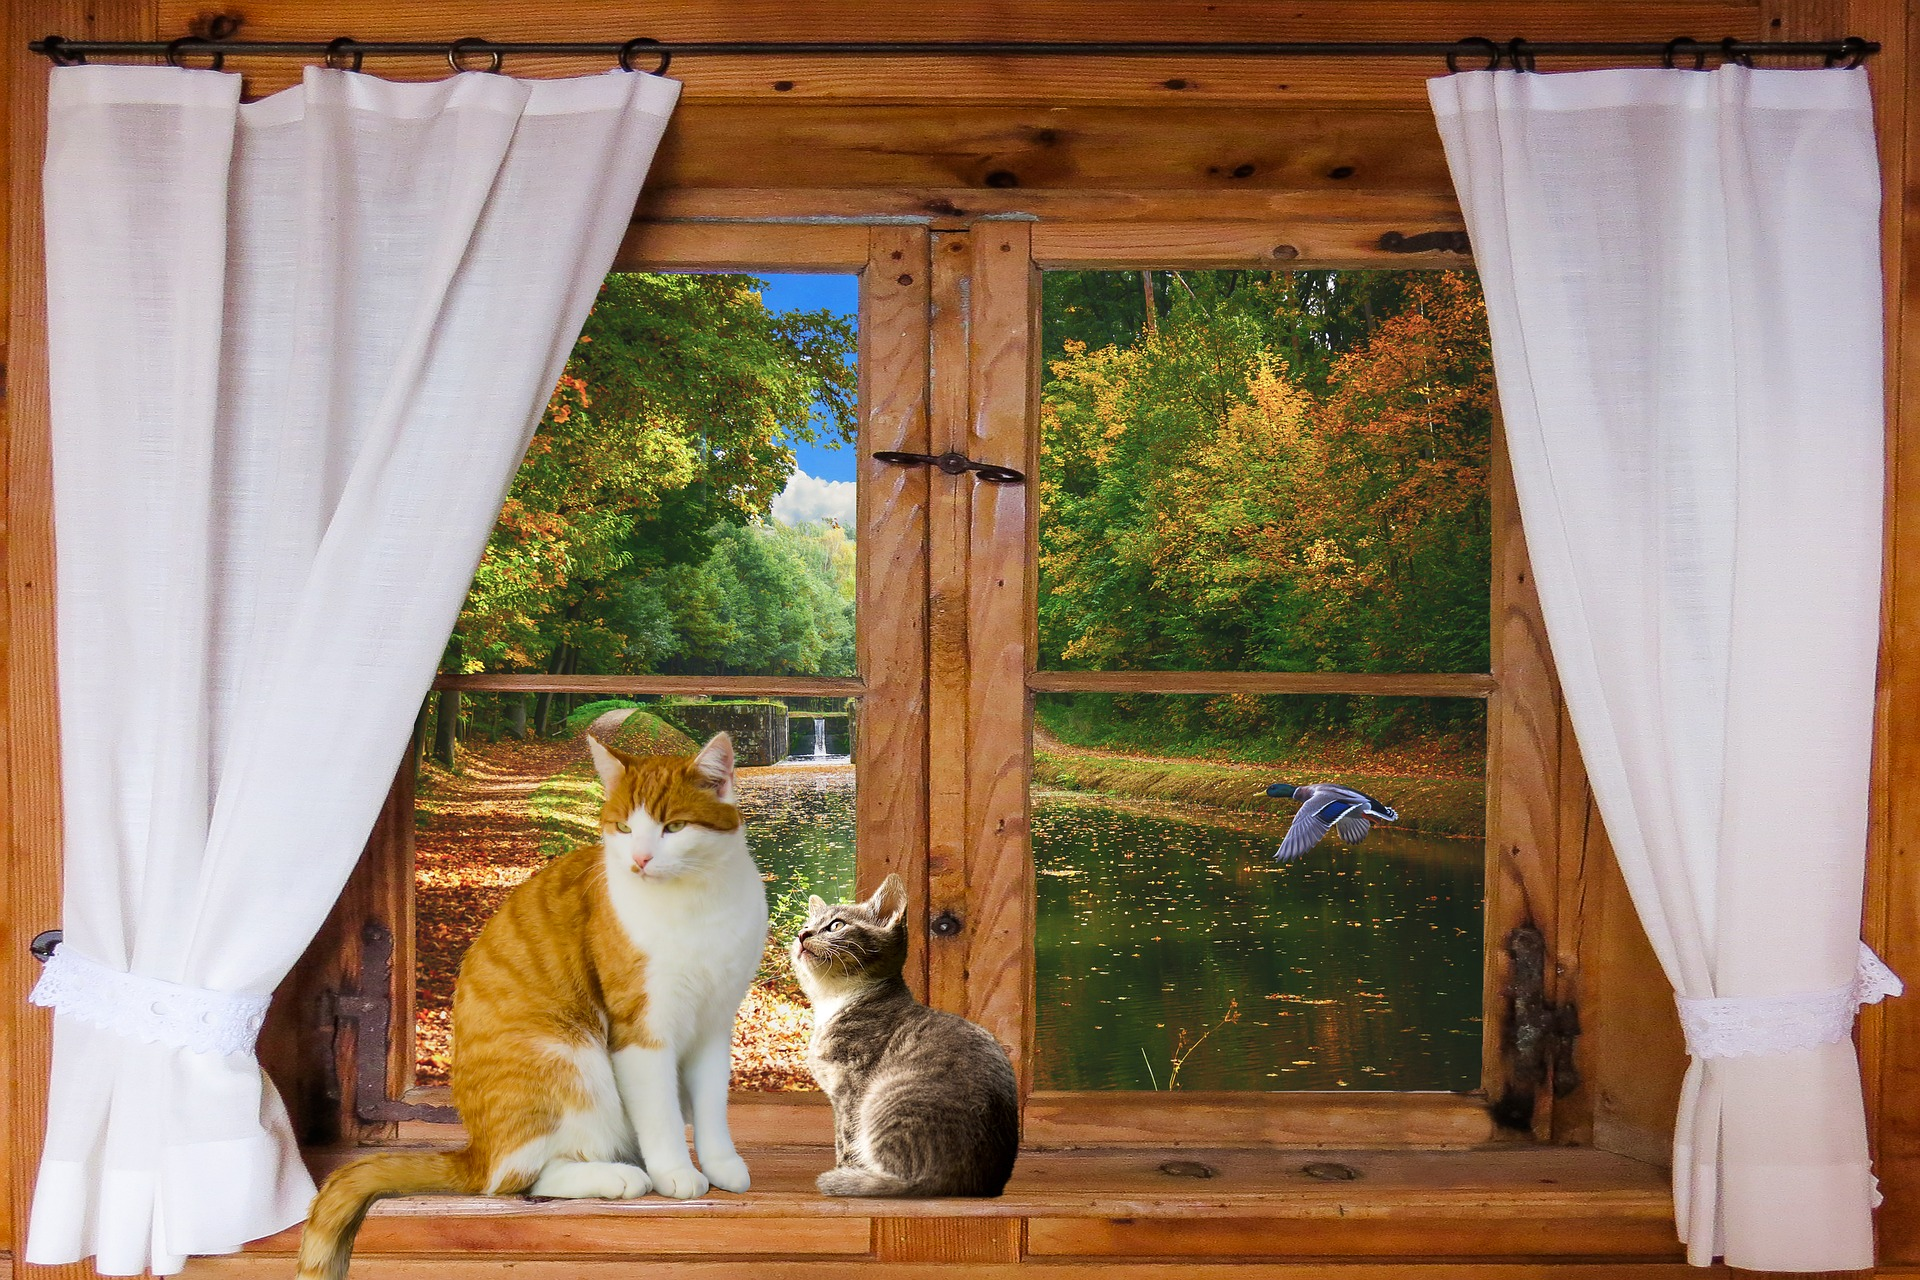 Cat and kitten on a windowsill with a lake and a duck flying outside